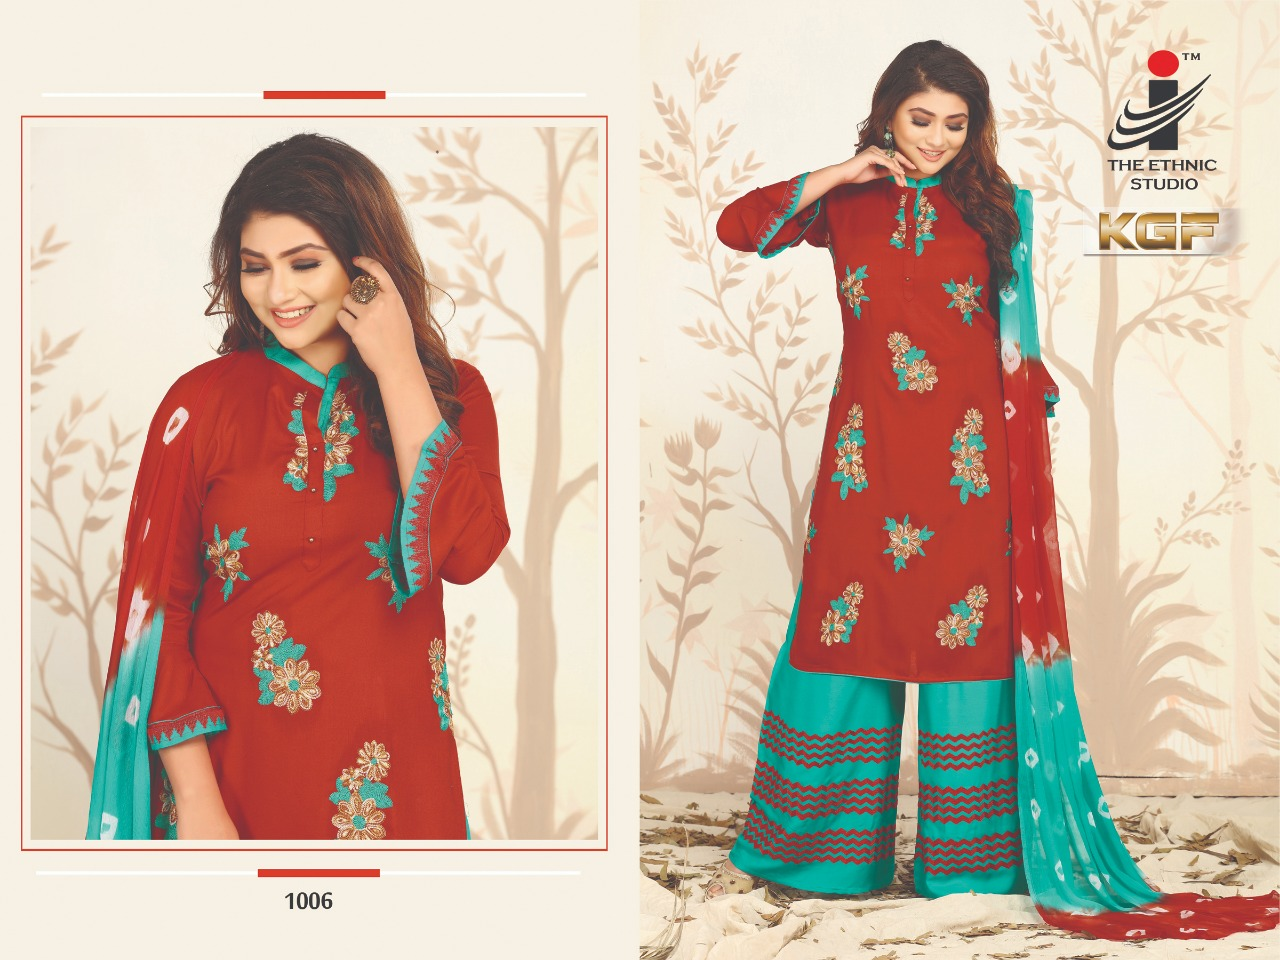 The Ethnic Studio Kgf collection 4